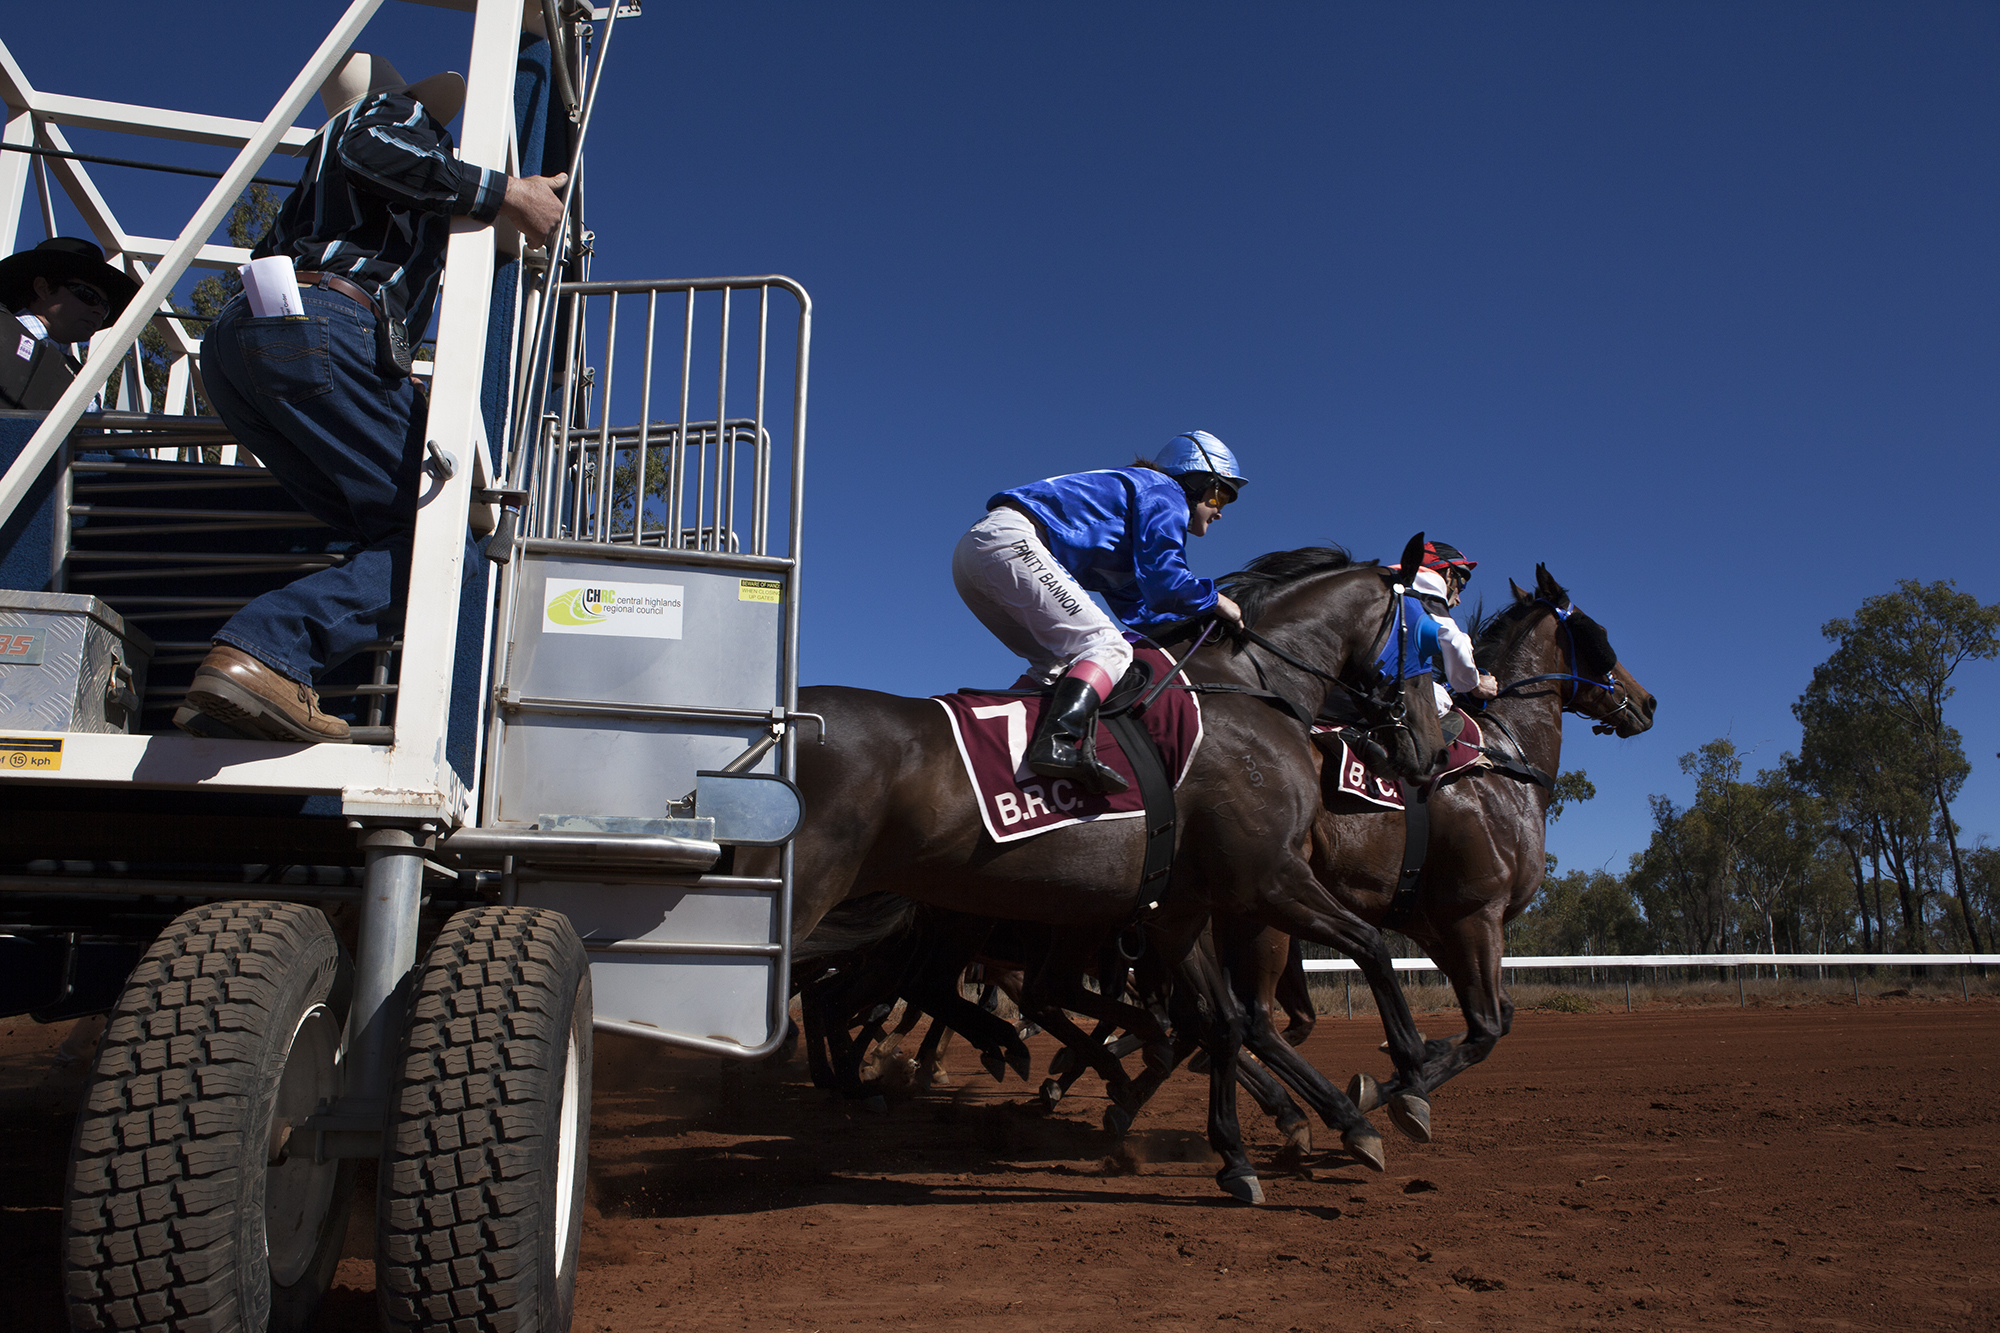 The Alpha races in outback Queensland.